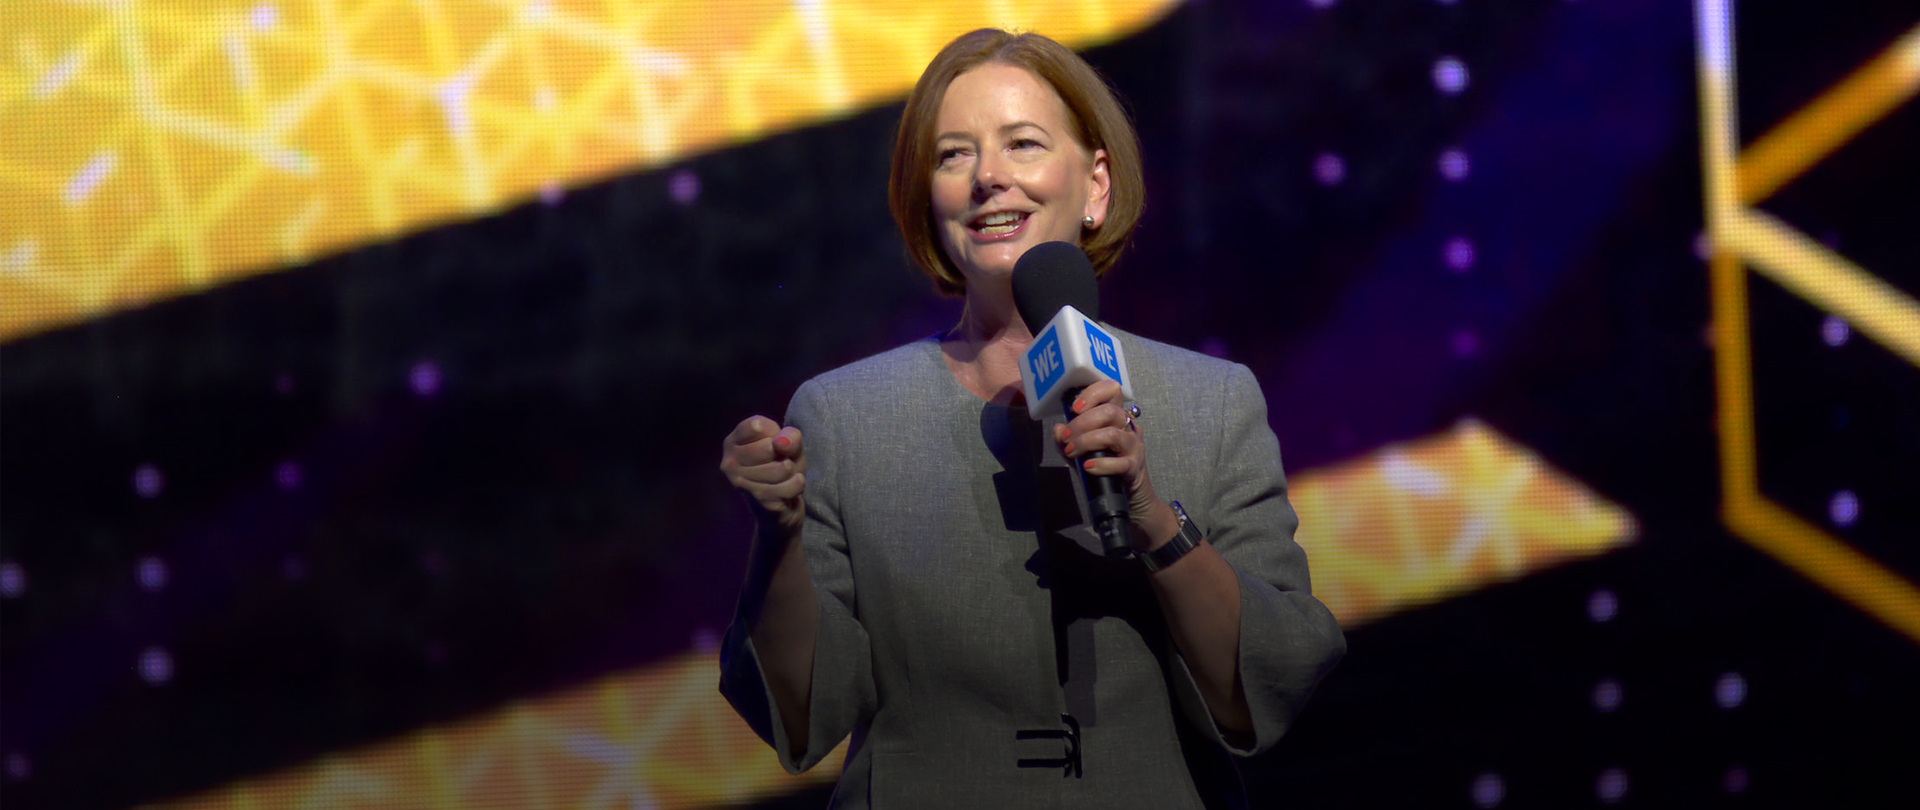 julia-gillard-hero-2019-08-15.jpg